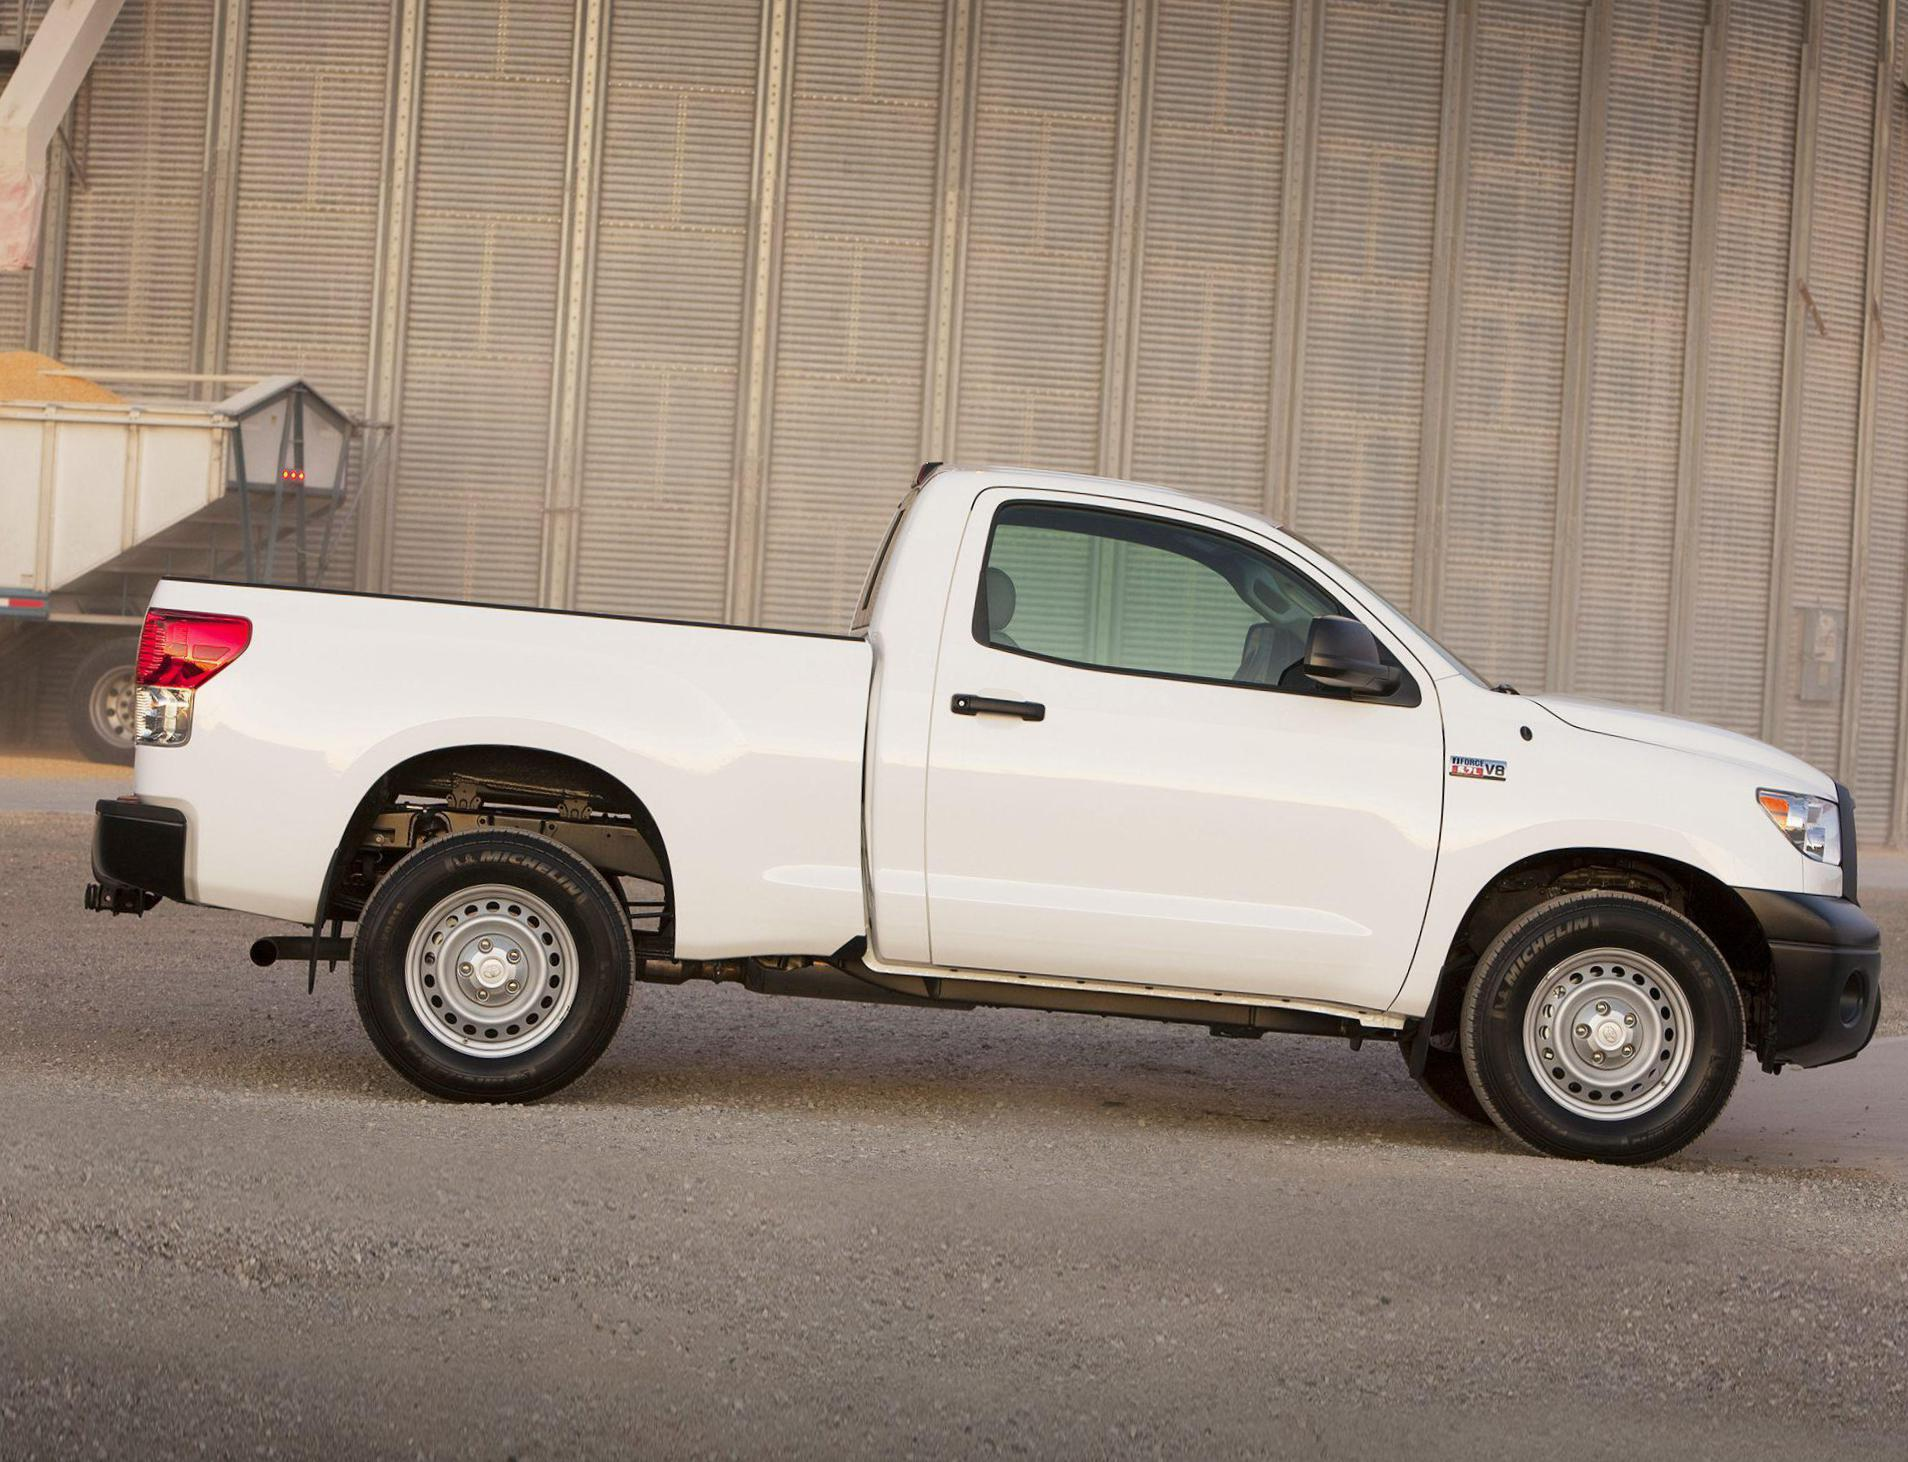 Toyota Tundra Regular Cab Tuning 2007